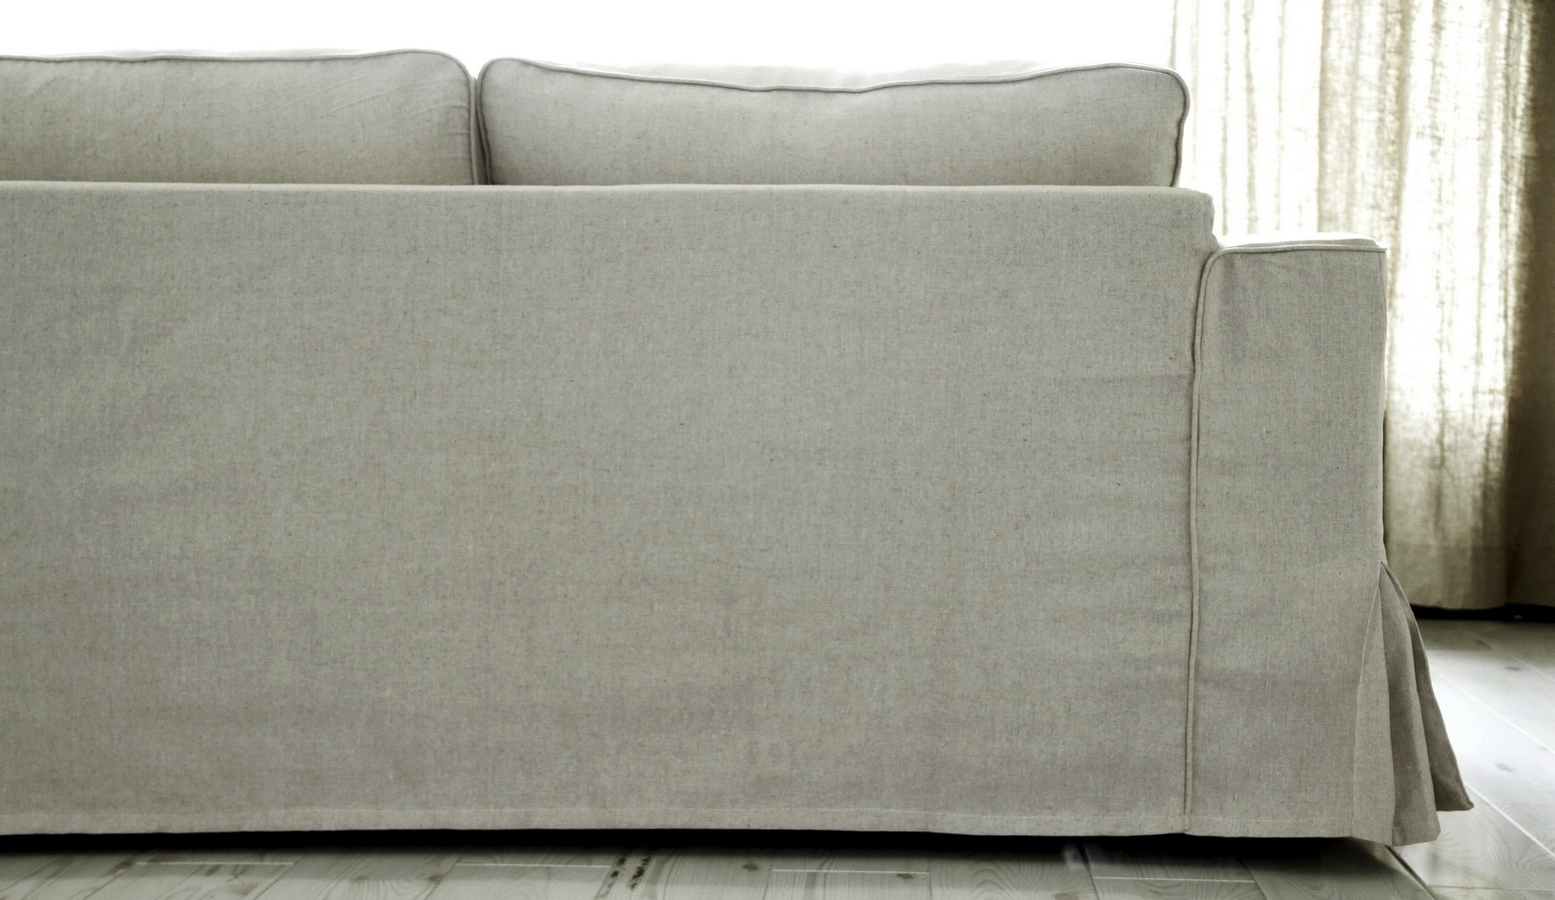 Loose Fit Linen Manstad Sofa Slipcovers Now Available With Regard To Well Known Manstad Sofas (View 7 of 15)